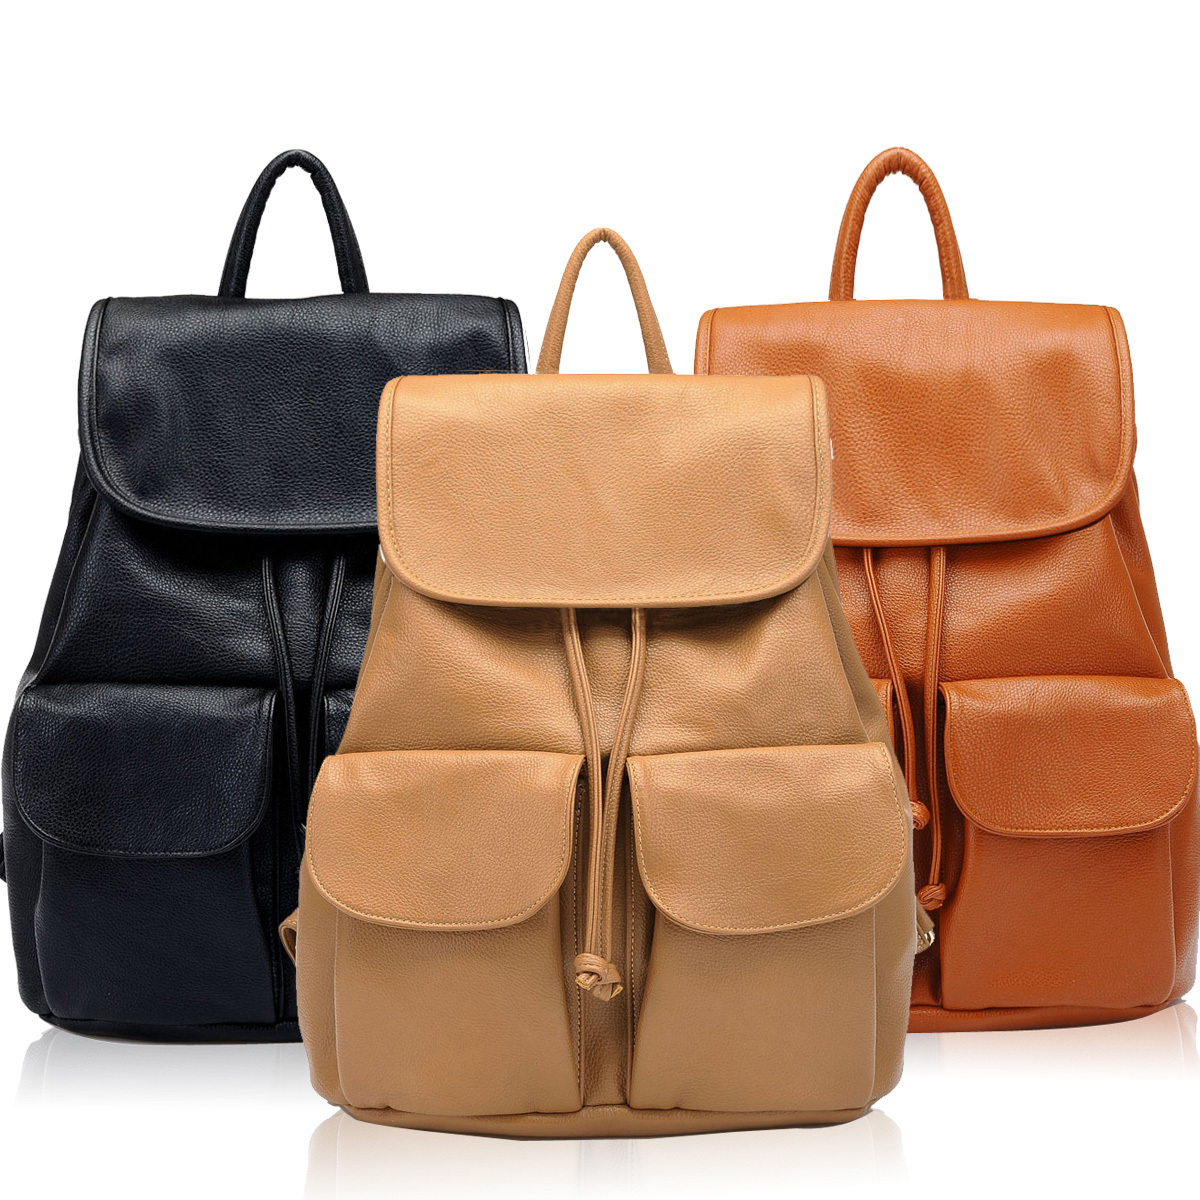 Leather Women Backpack C3qnMeaq